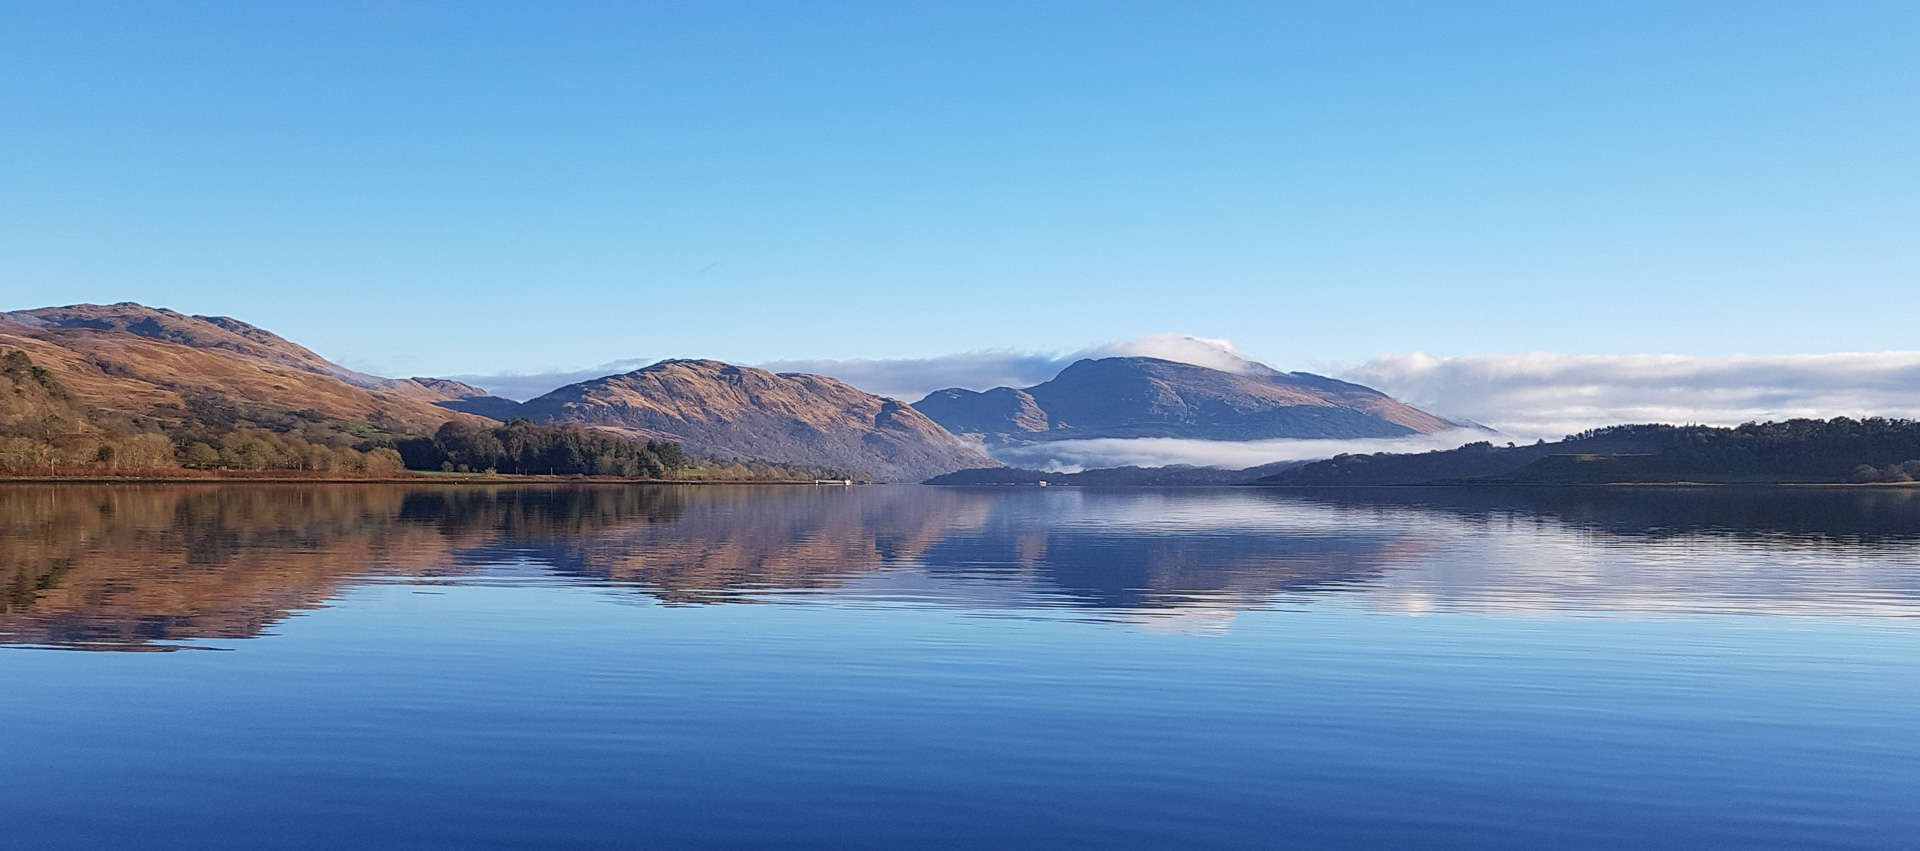 A perfect winters day on Loch Etive, looking towards the snow capped Ben Cruachan